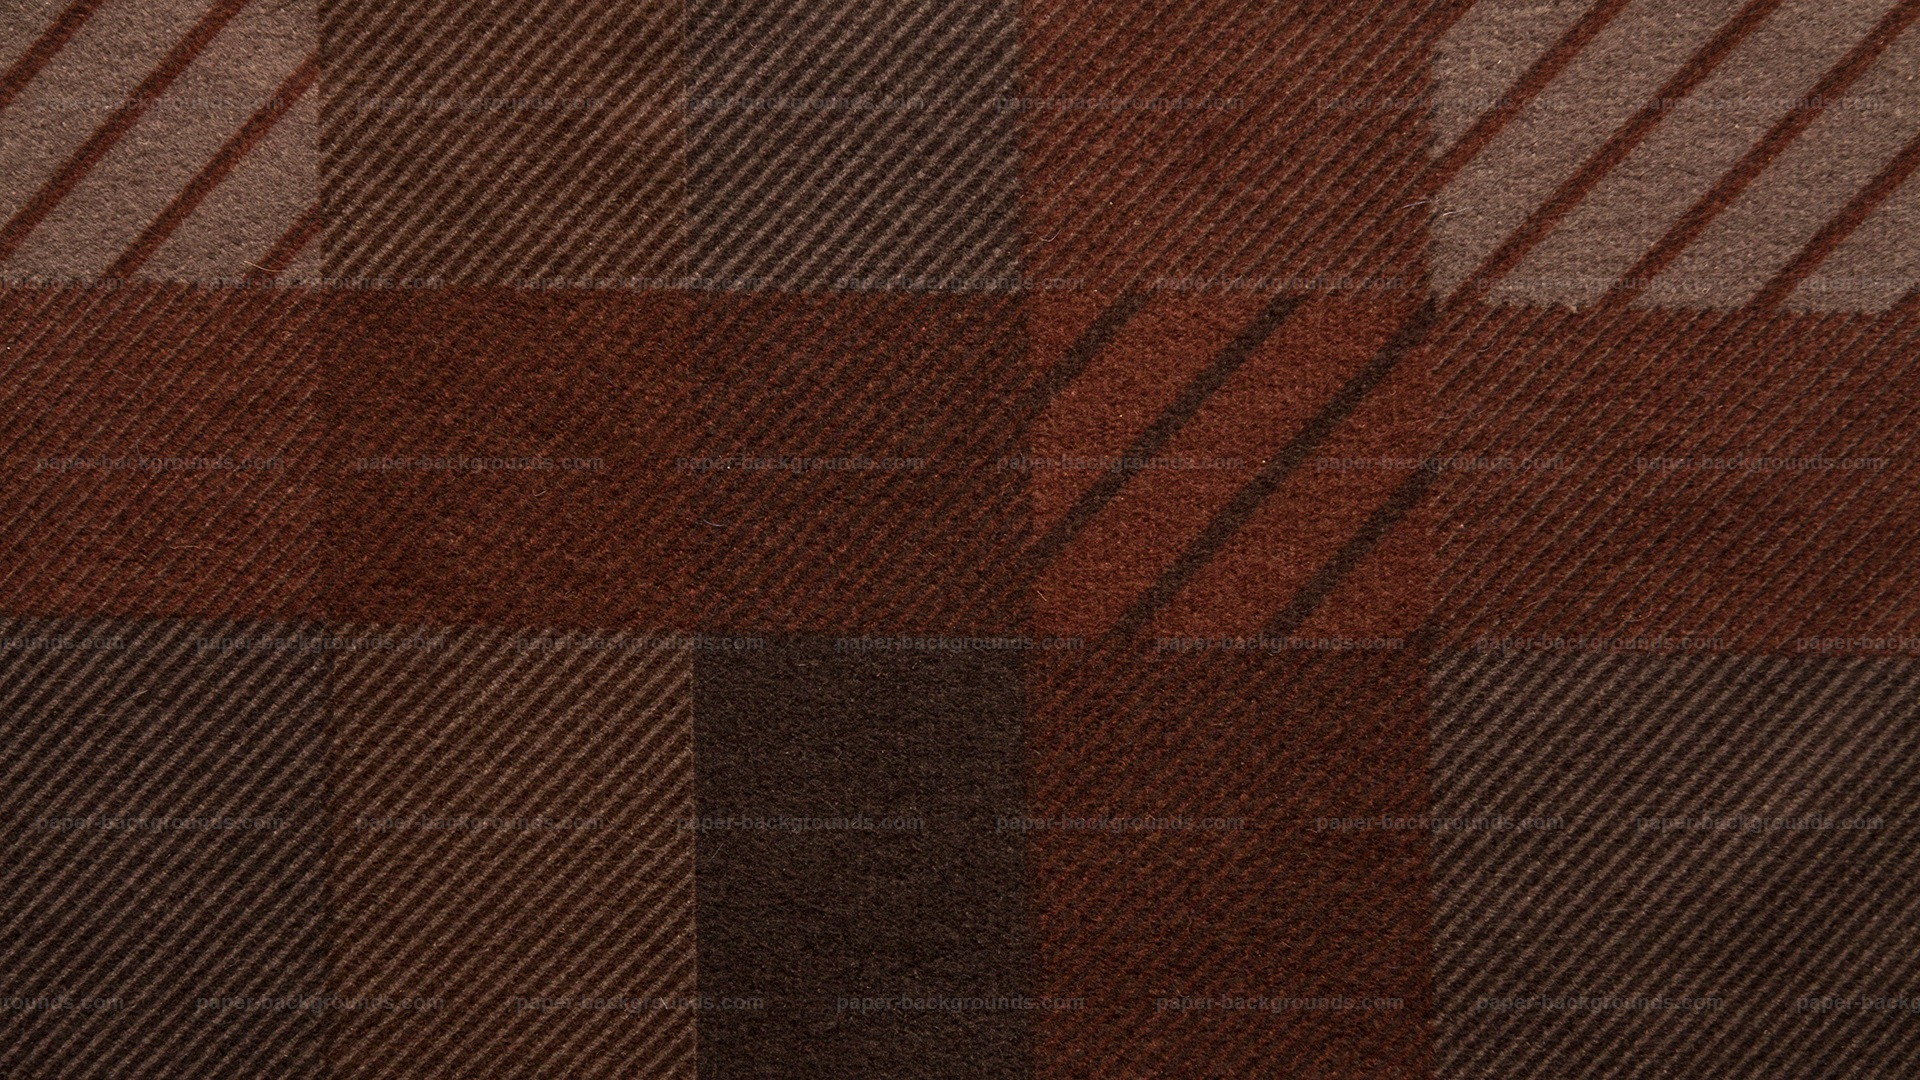 Brown Seamless Fabric Textures Paper Backgrounds Vintage Backgrounds Royalty Free Hd Paper